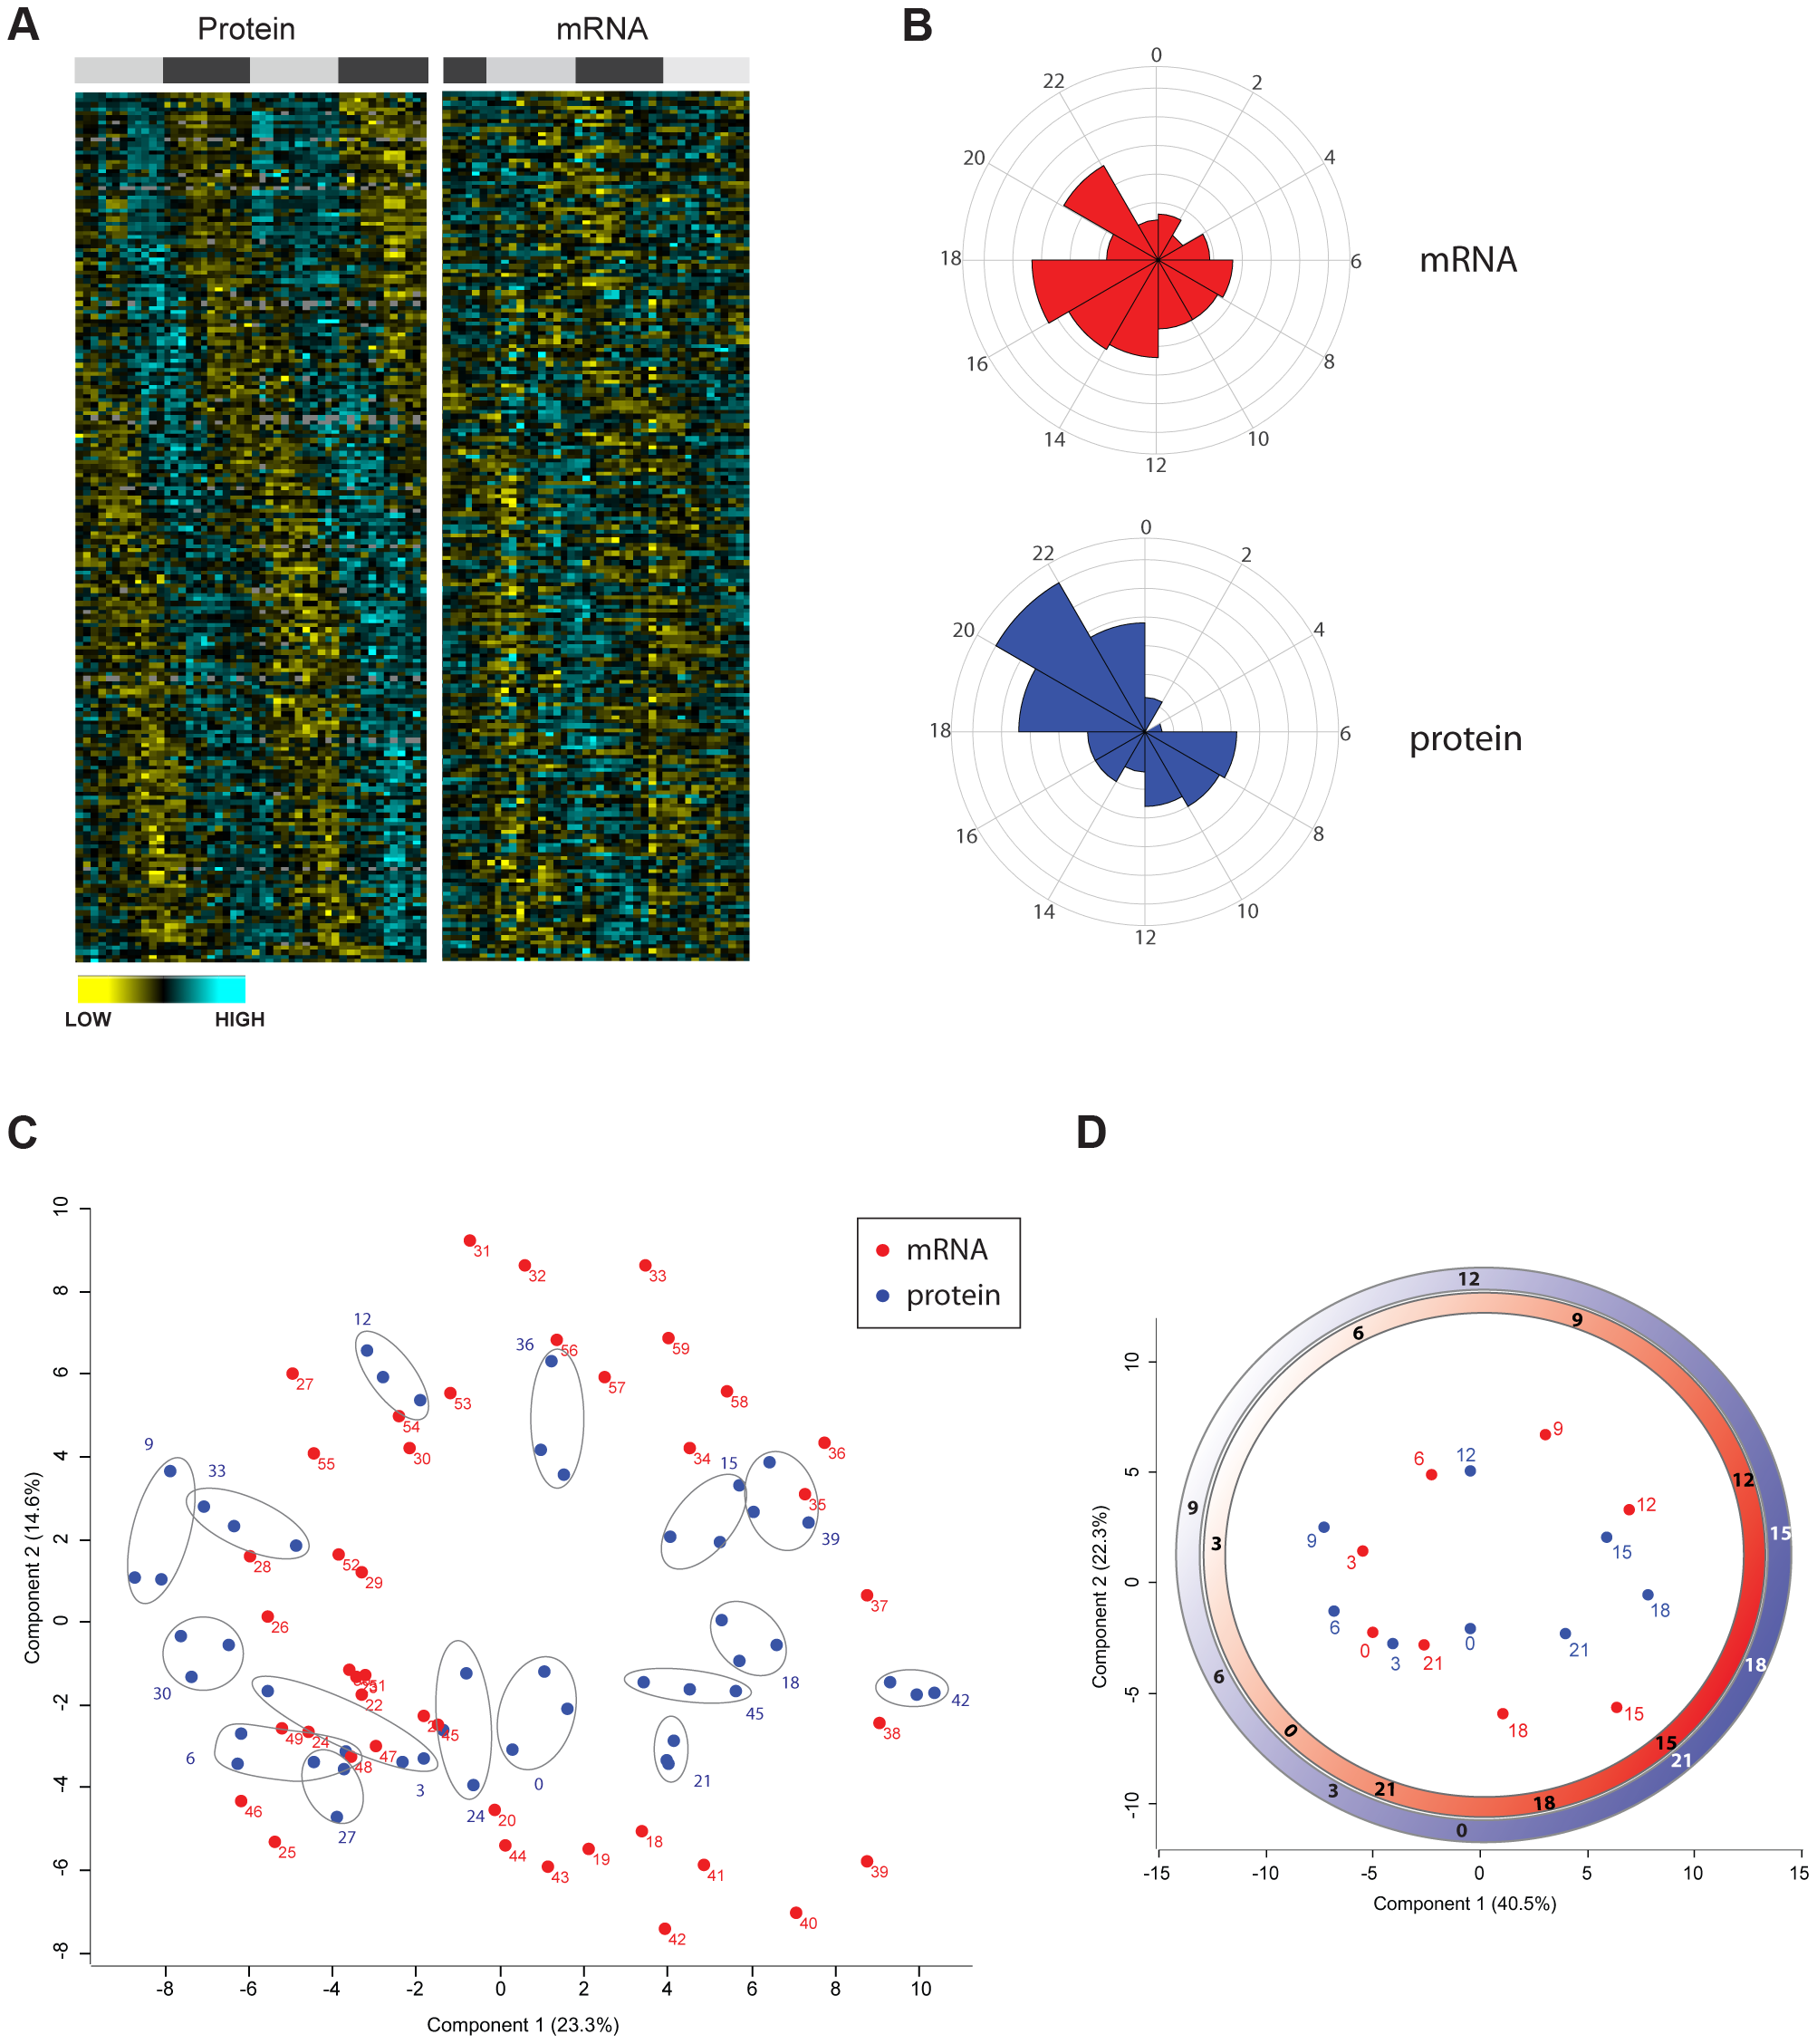 Divergence in the temporal profile of mouse liver proteome and transcriptome.